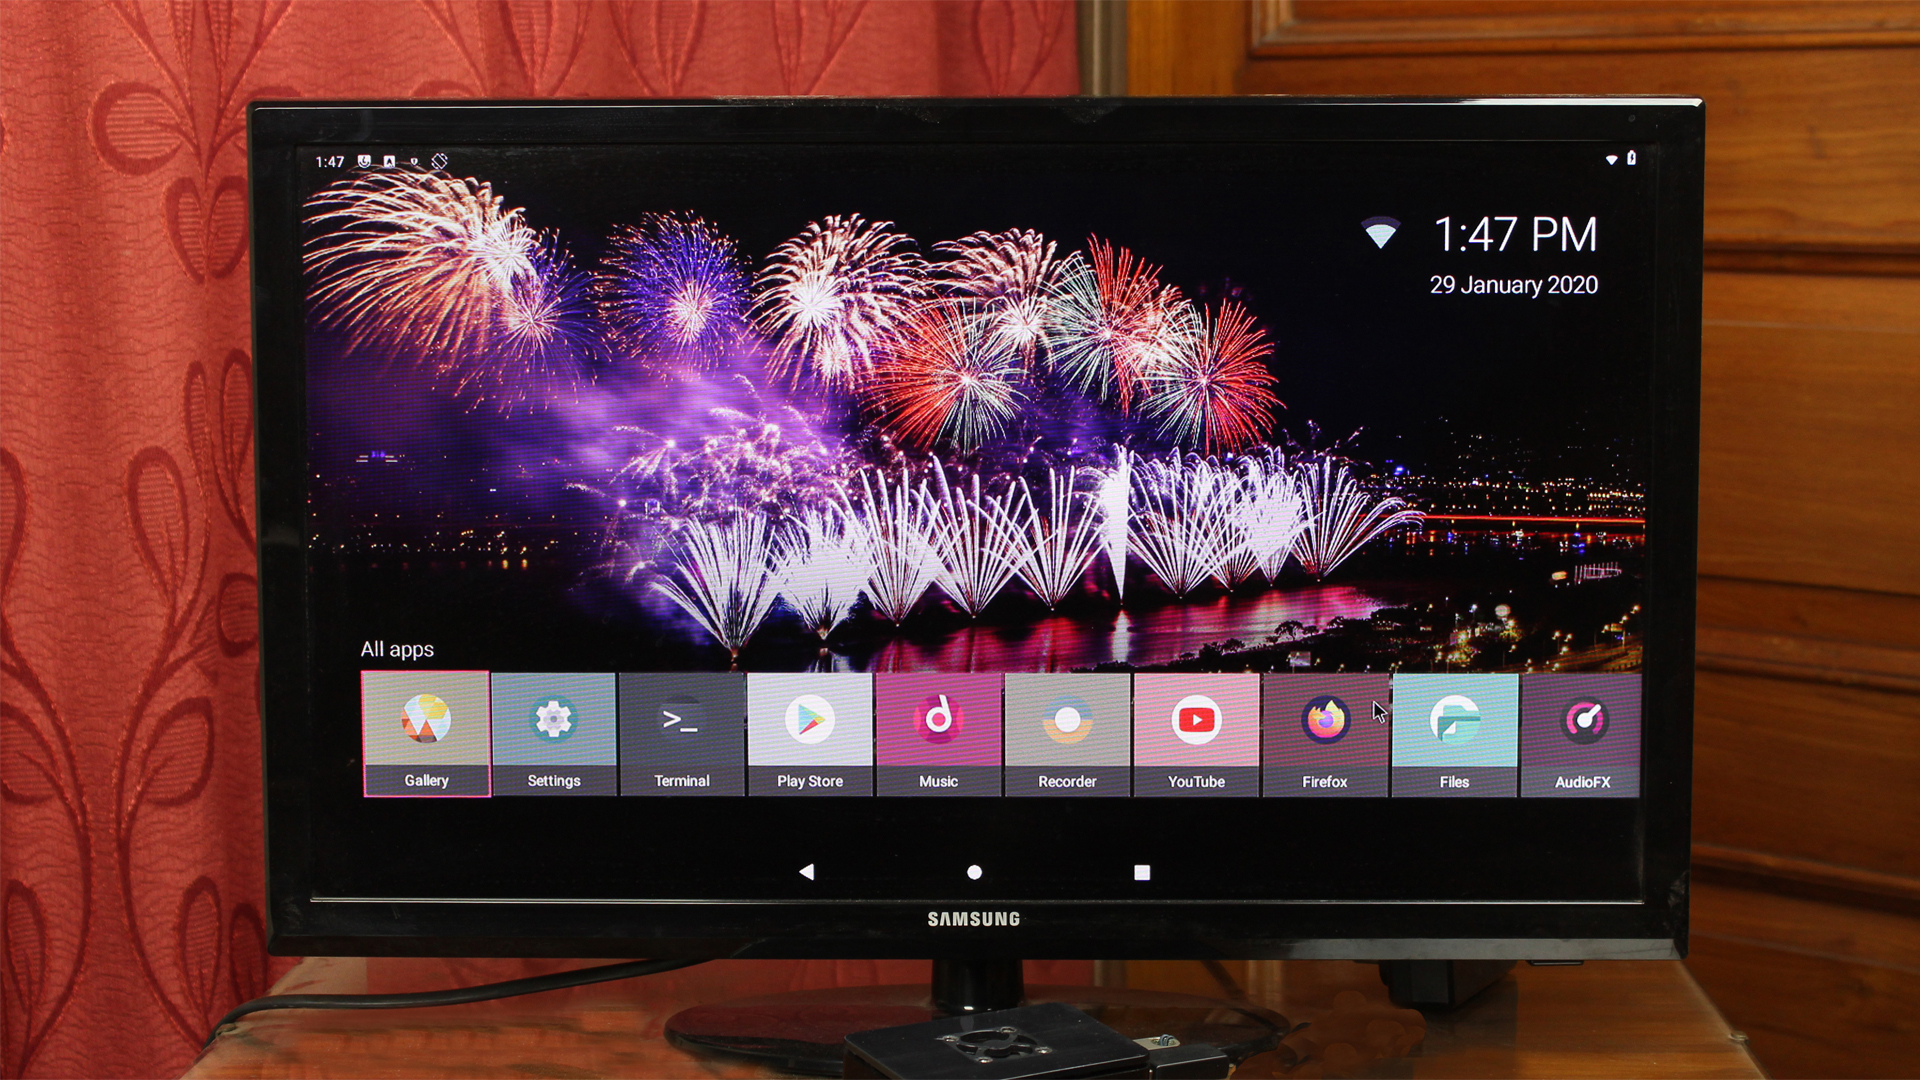 [Best] Android TV Launcher Apps that You Can Use